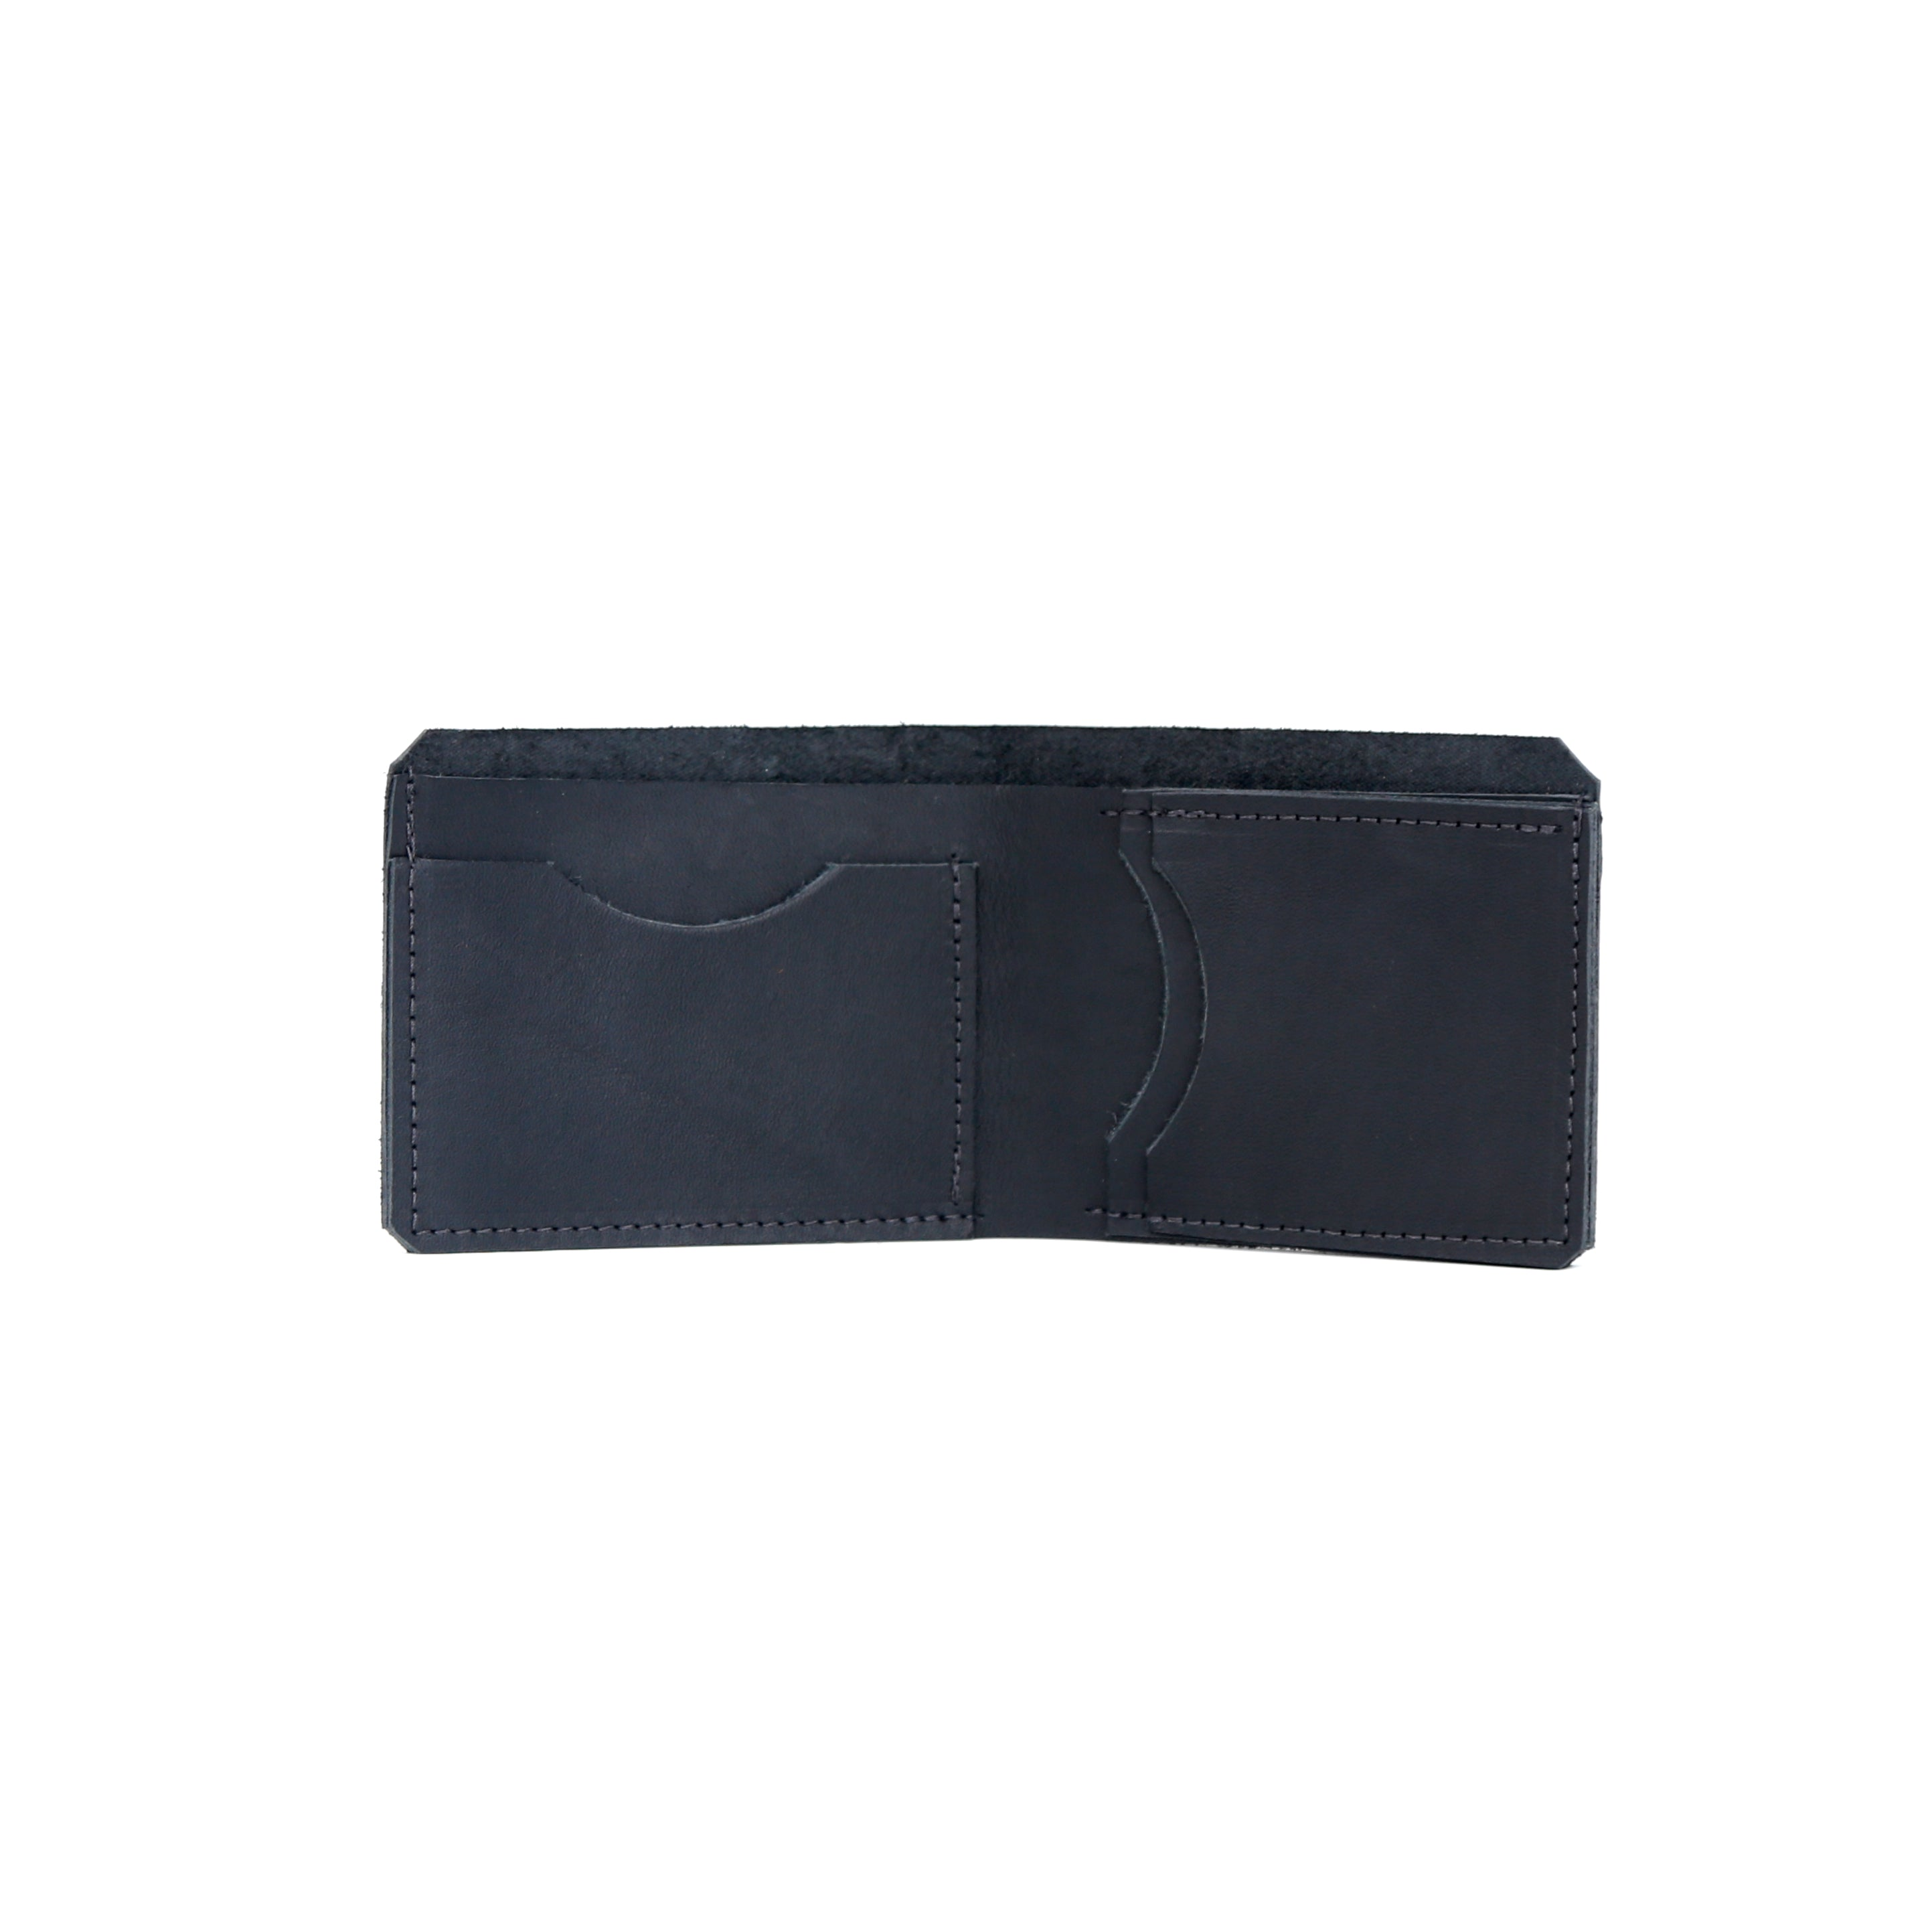 Bi fold Wallet Leather - handcrafted by Market Canvas Leather in Tofino, BC, Canada